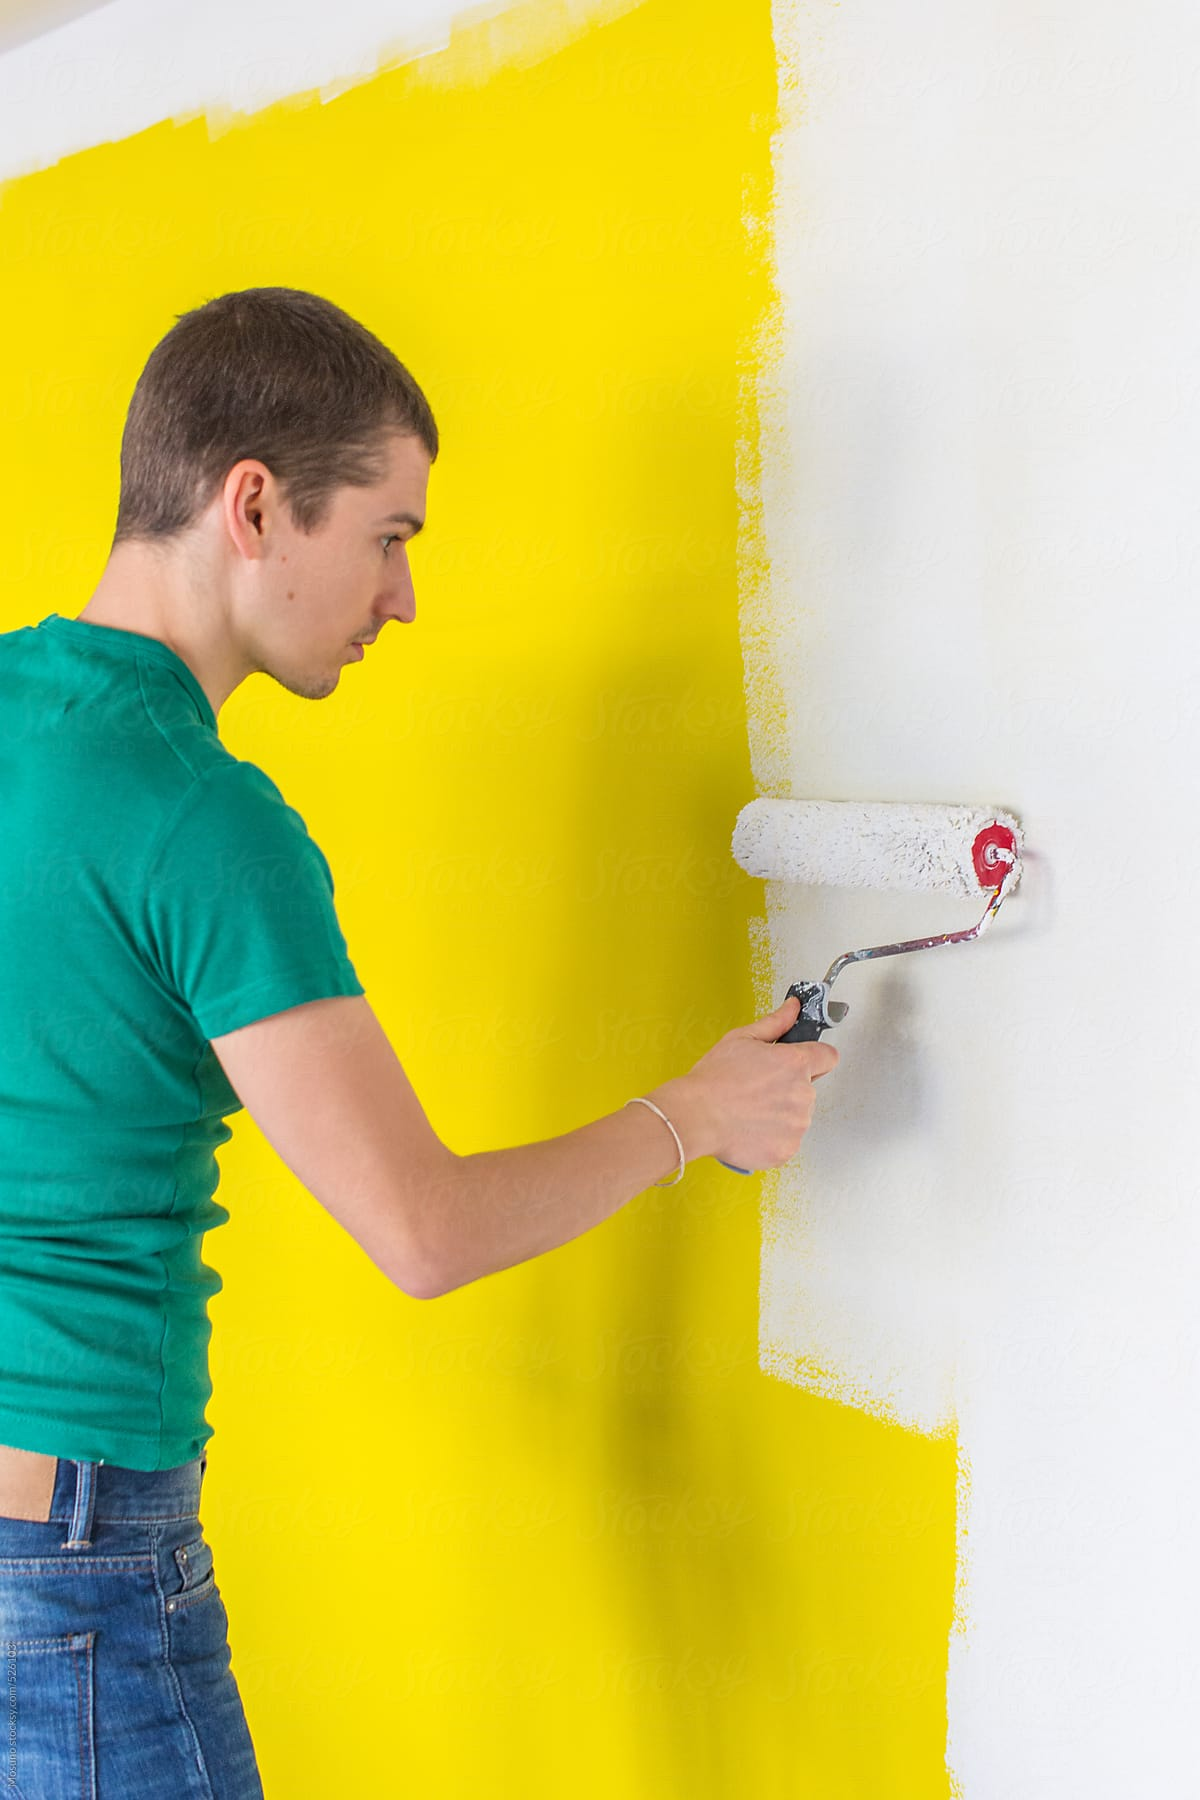 Man Painting Yellow Wall in His House by Mosuno - Stocksy United